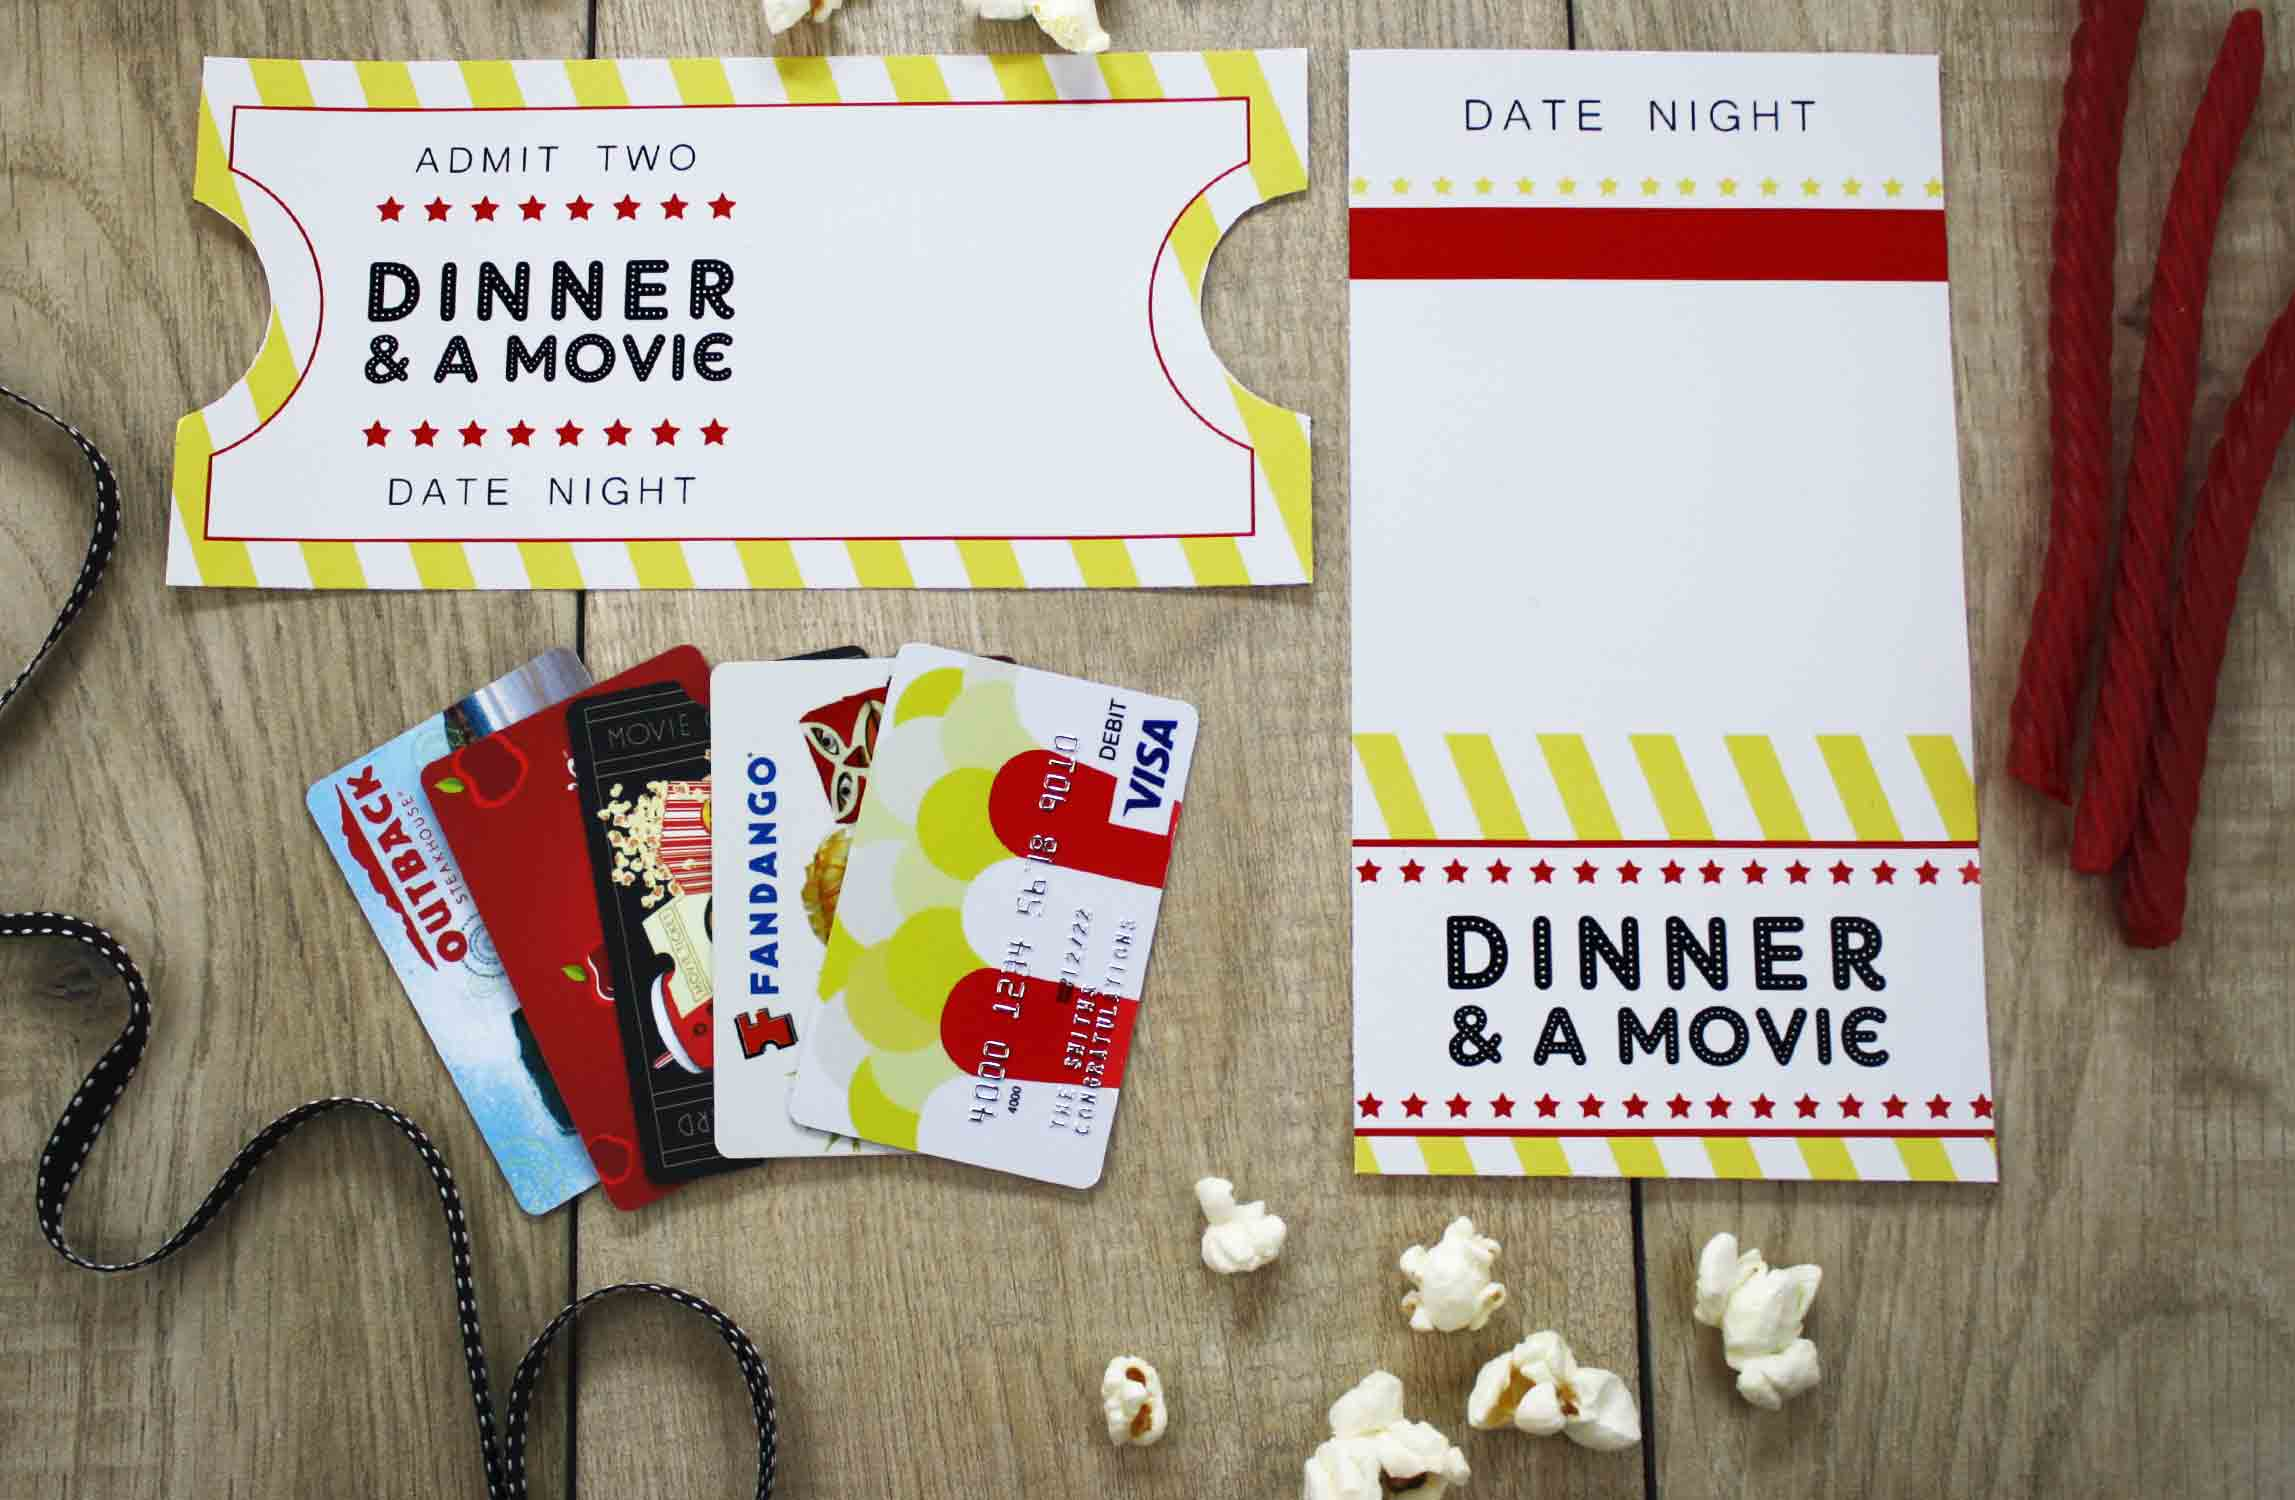 Date night gift card display